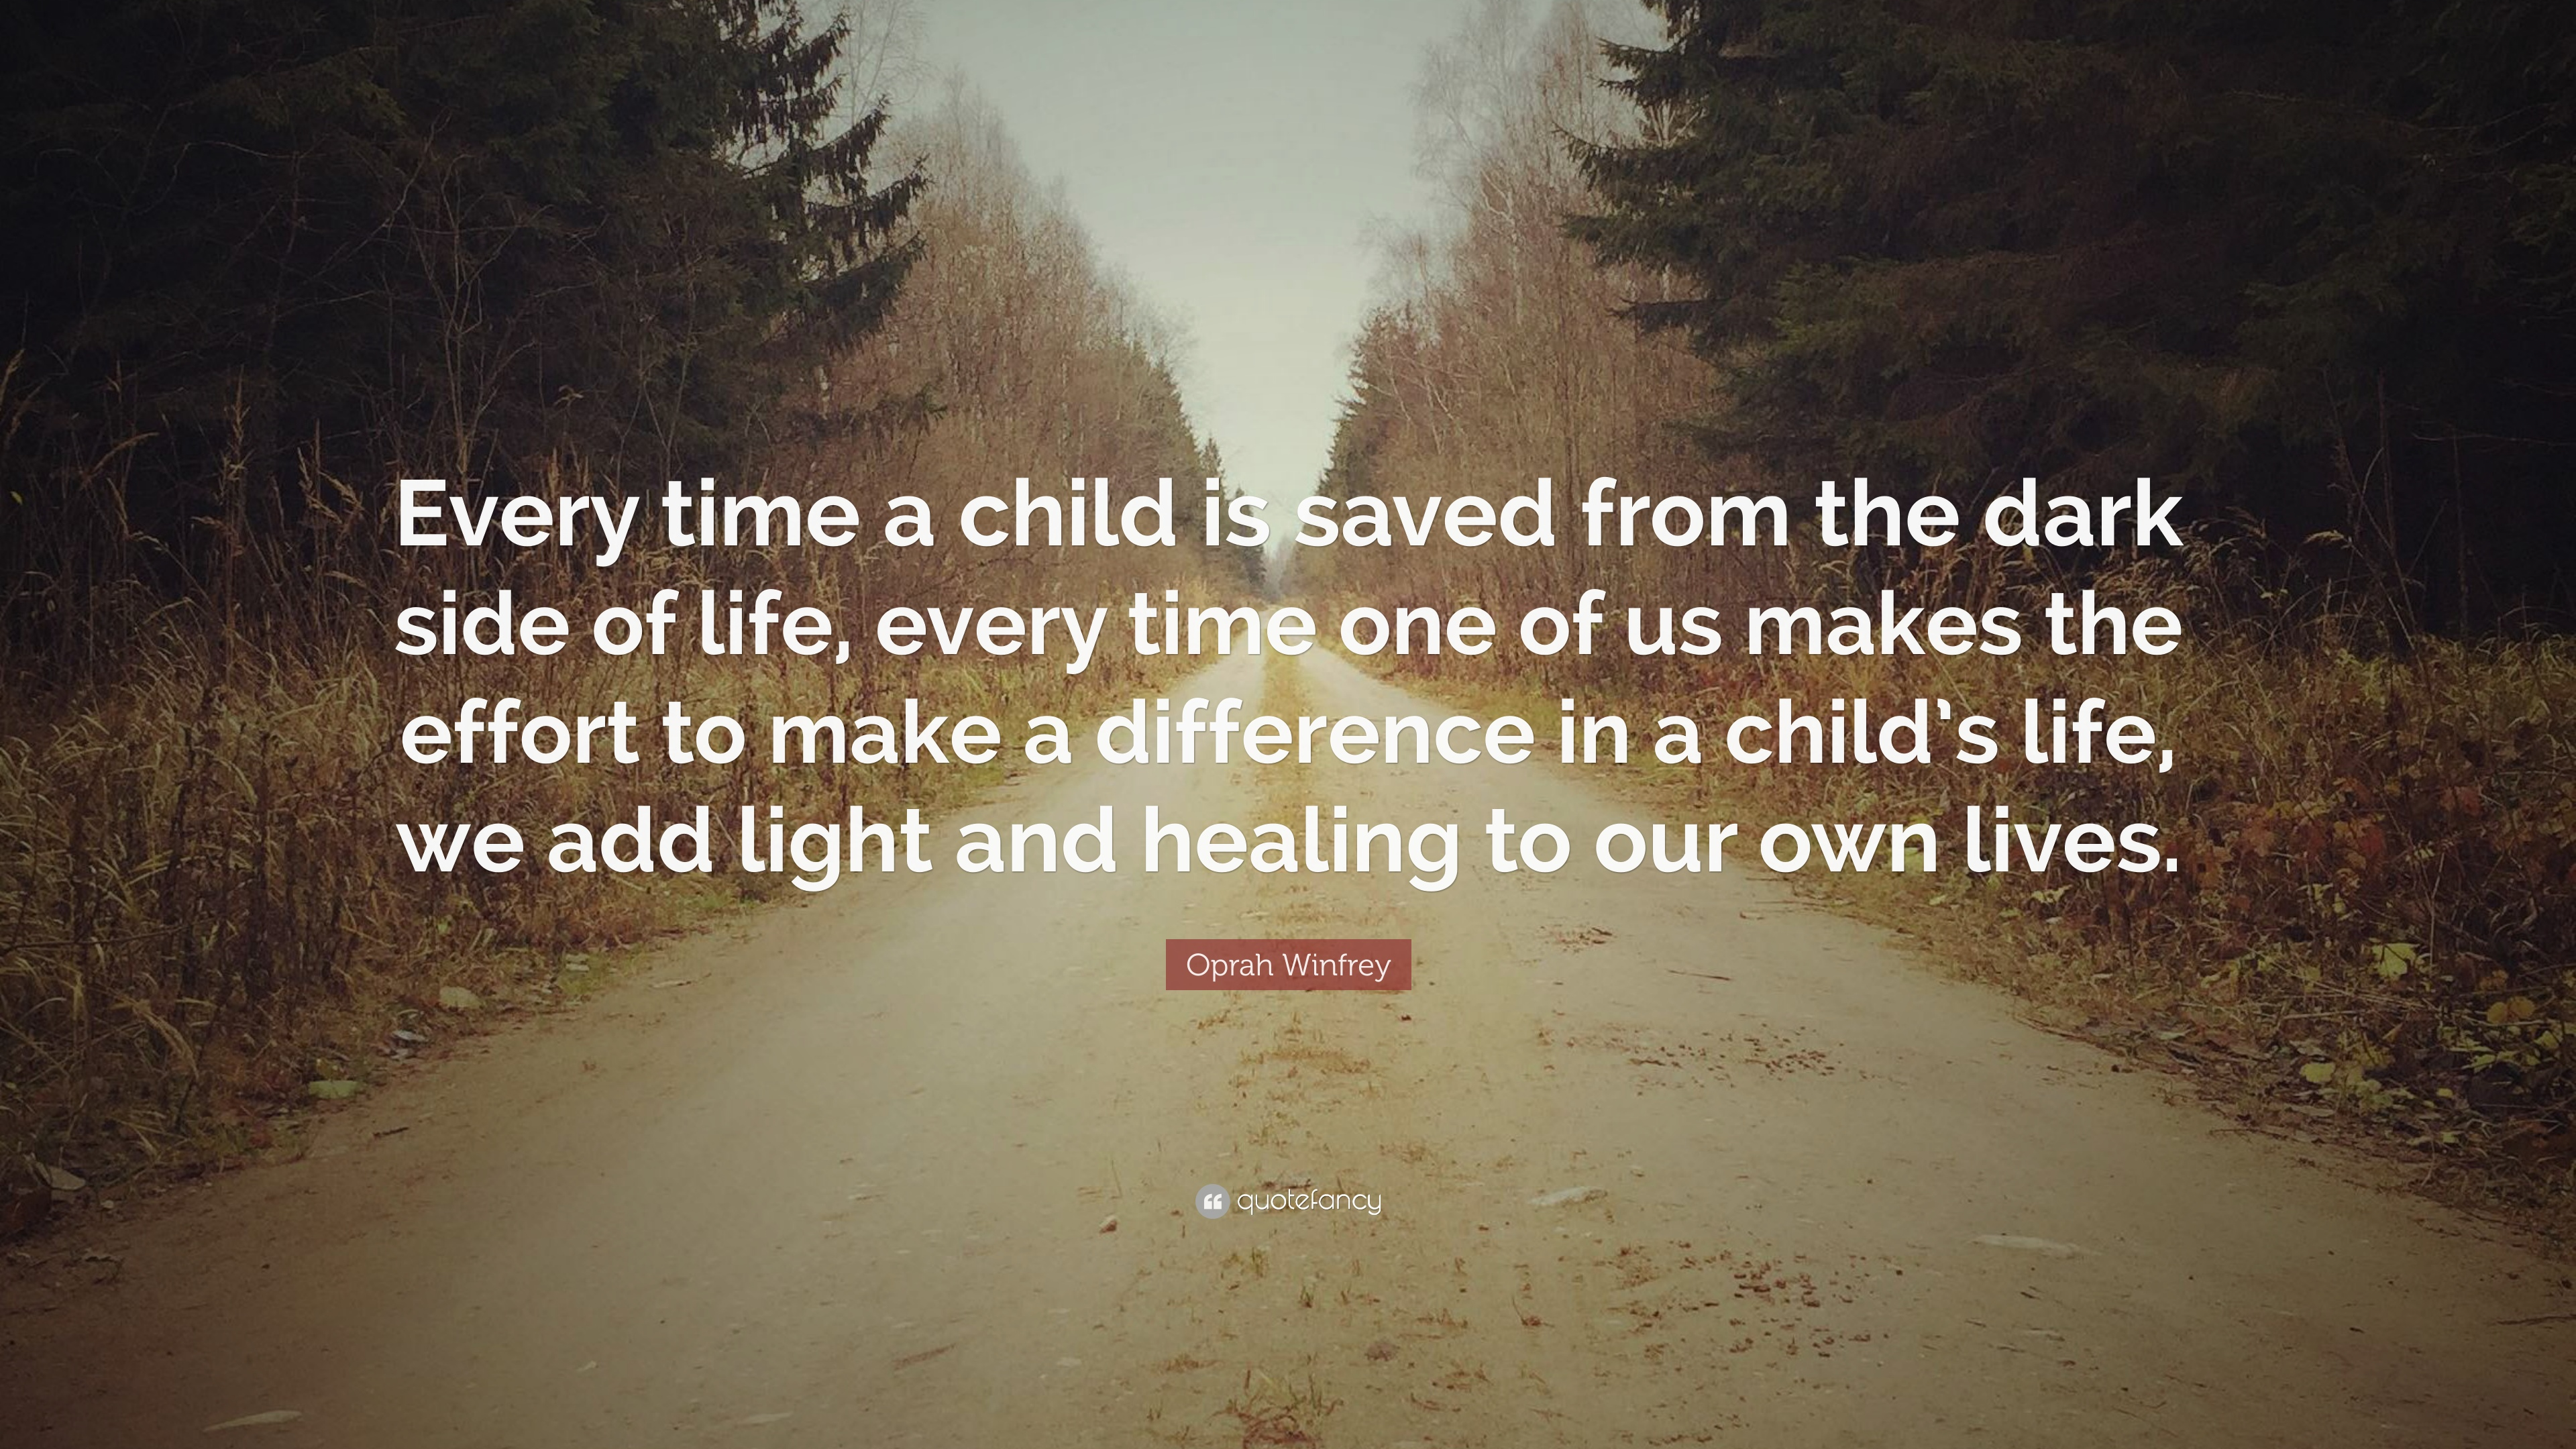 difference in a childs life quote